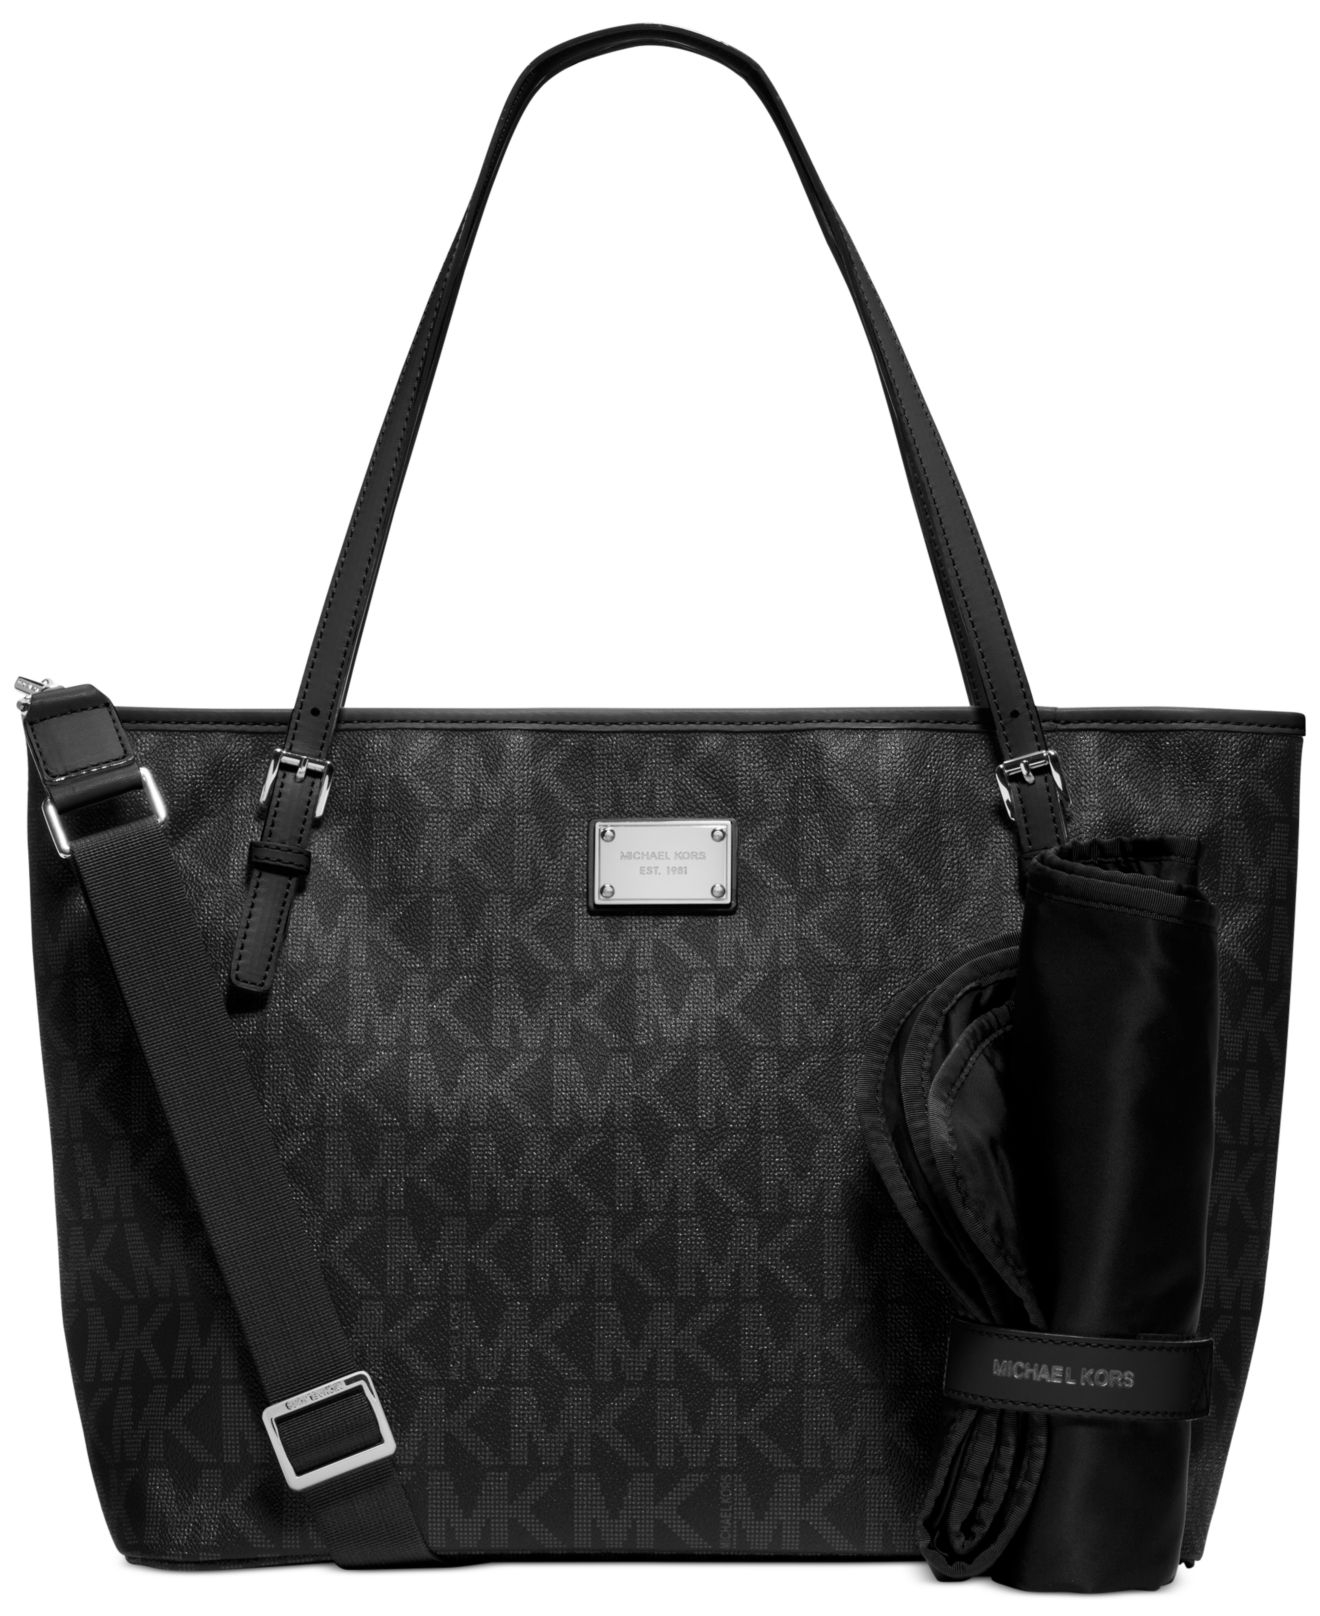 michael kors michael jet set diaper bag in black lyst. Black Bedroom Furniture Sets. Home Design Ideas